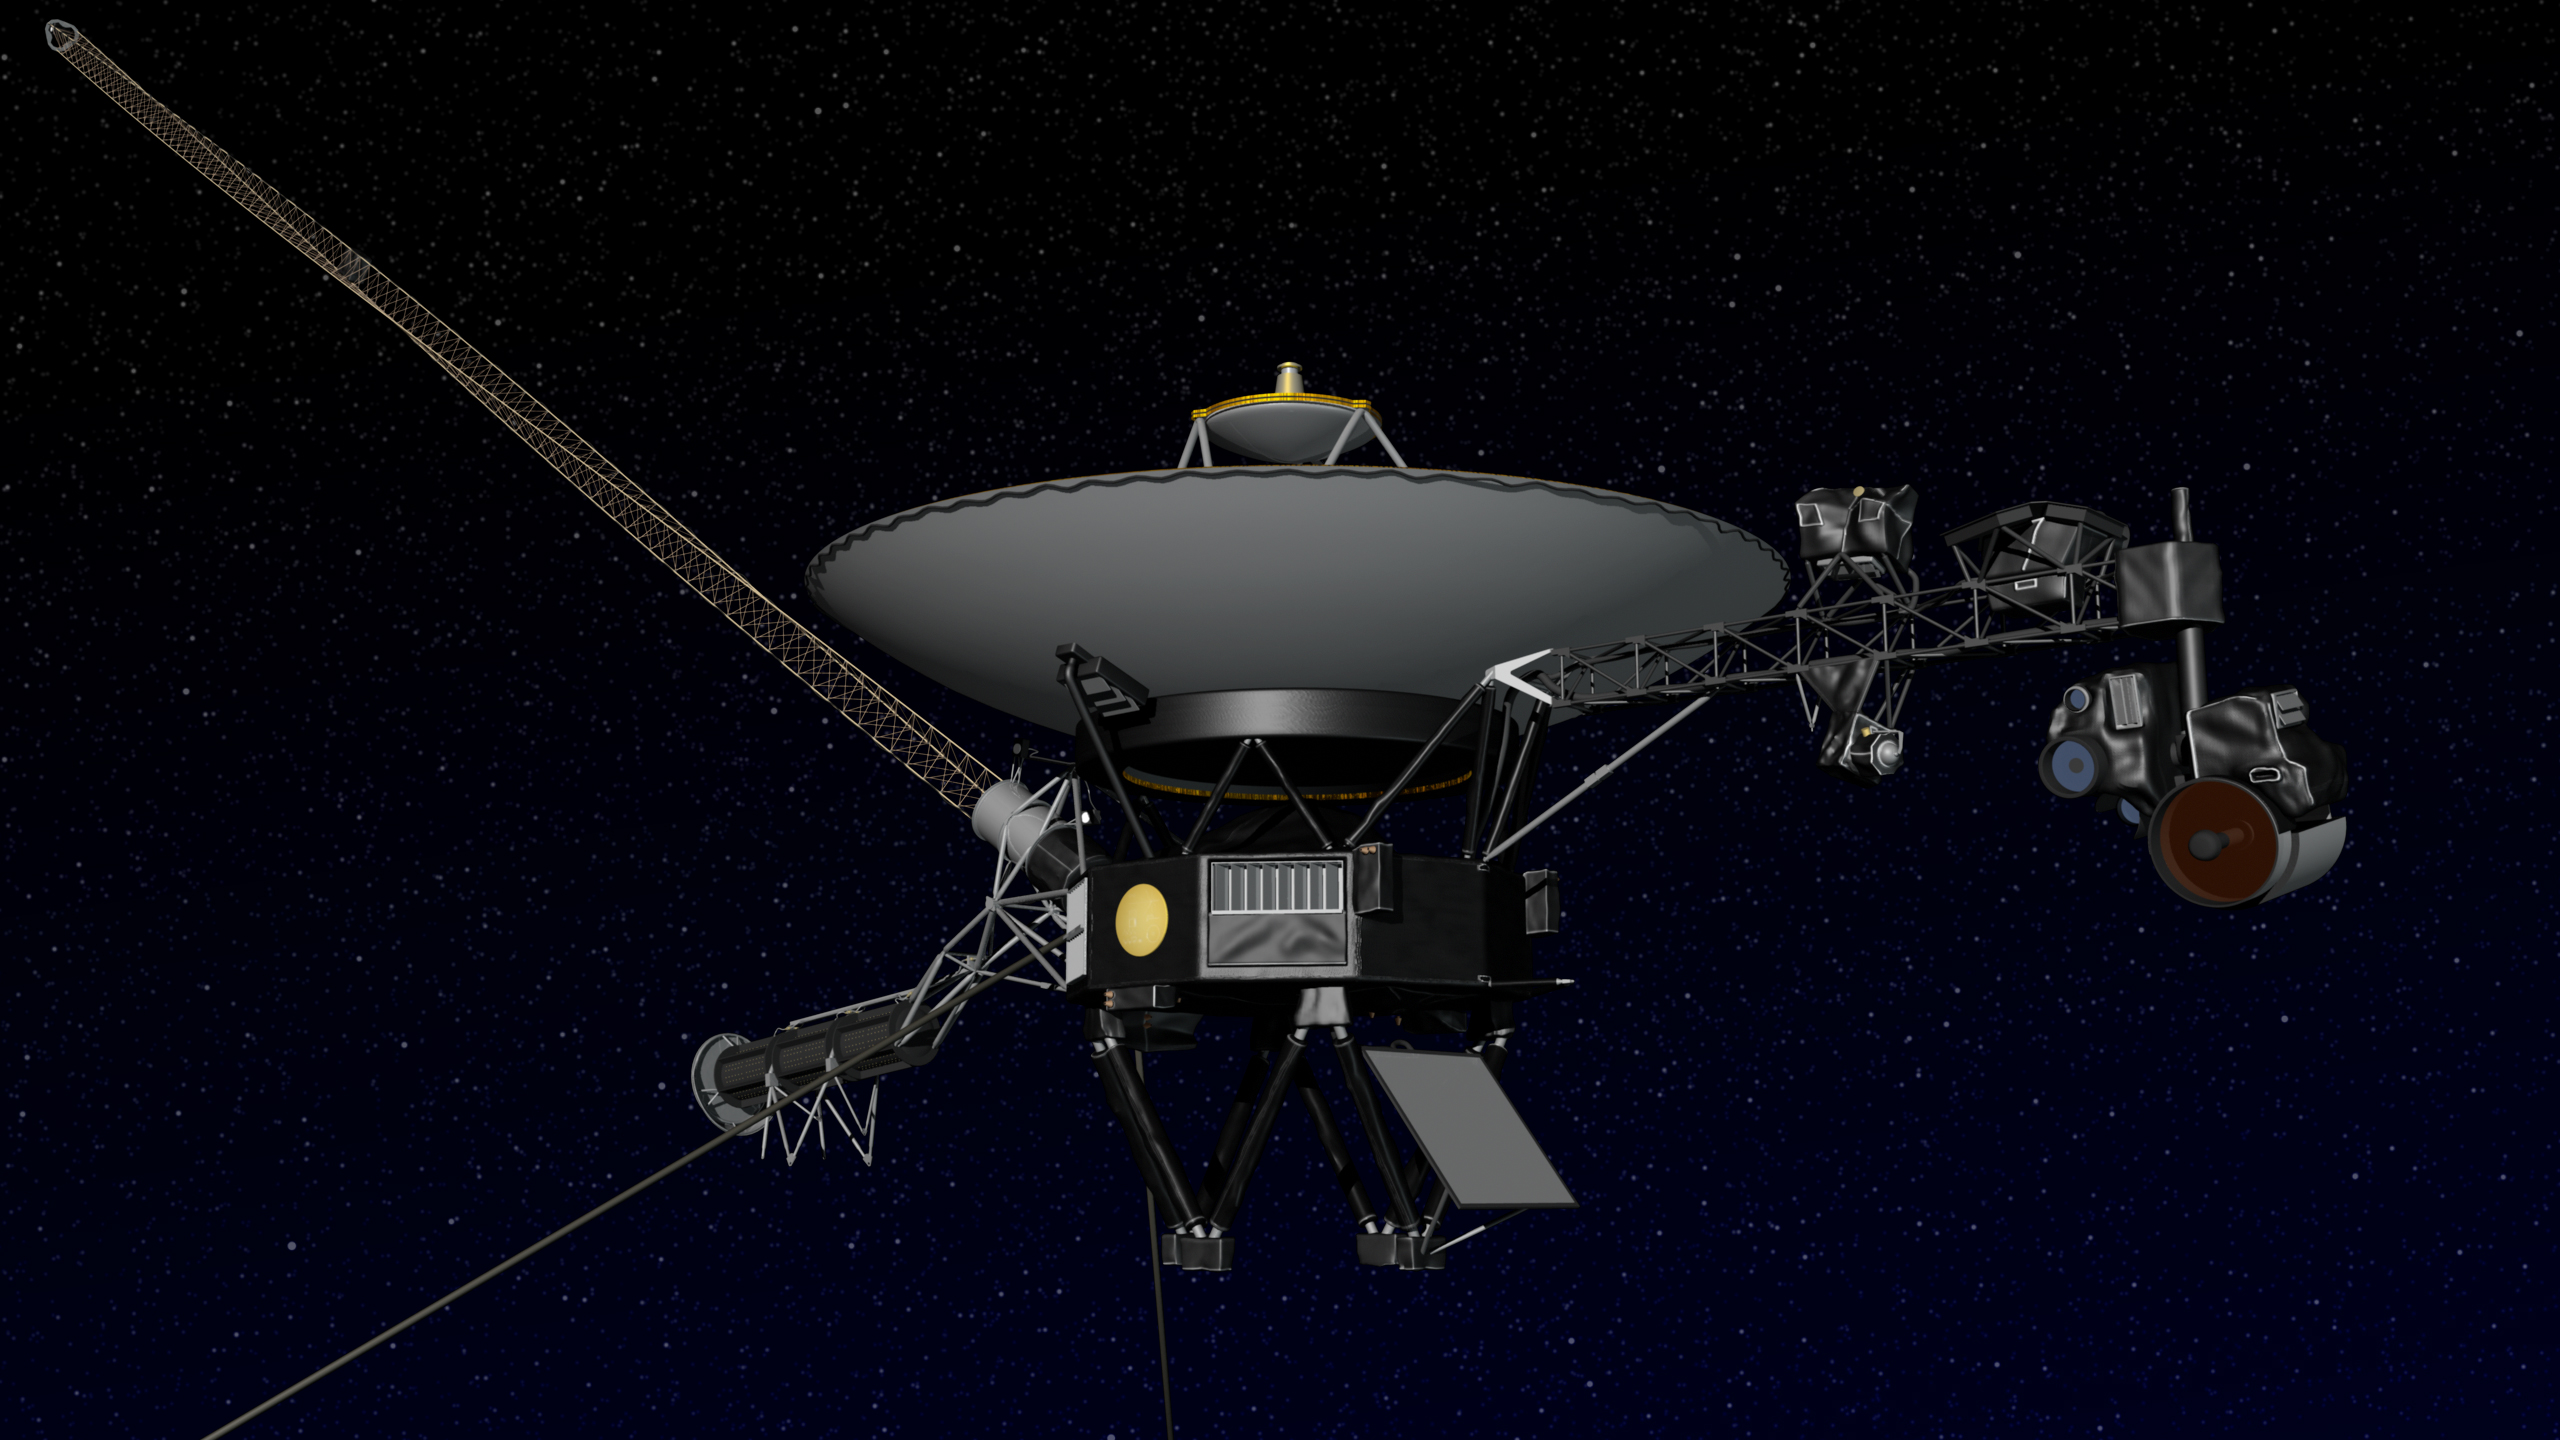 Artist concept of NASA's Voyager spacecraft. Image credit: NASA/JPL ...